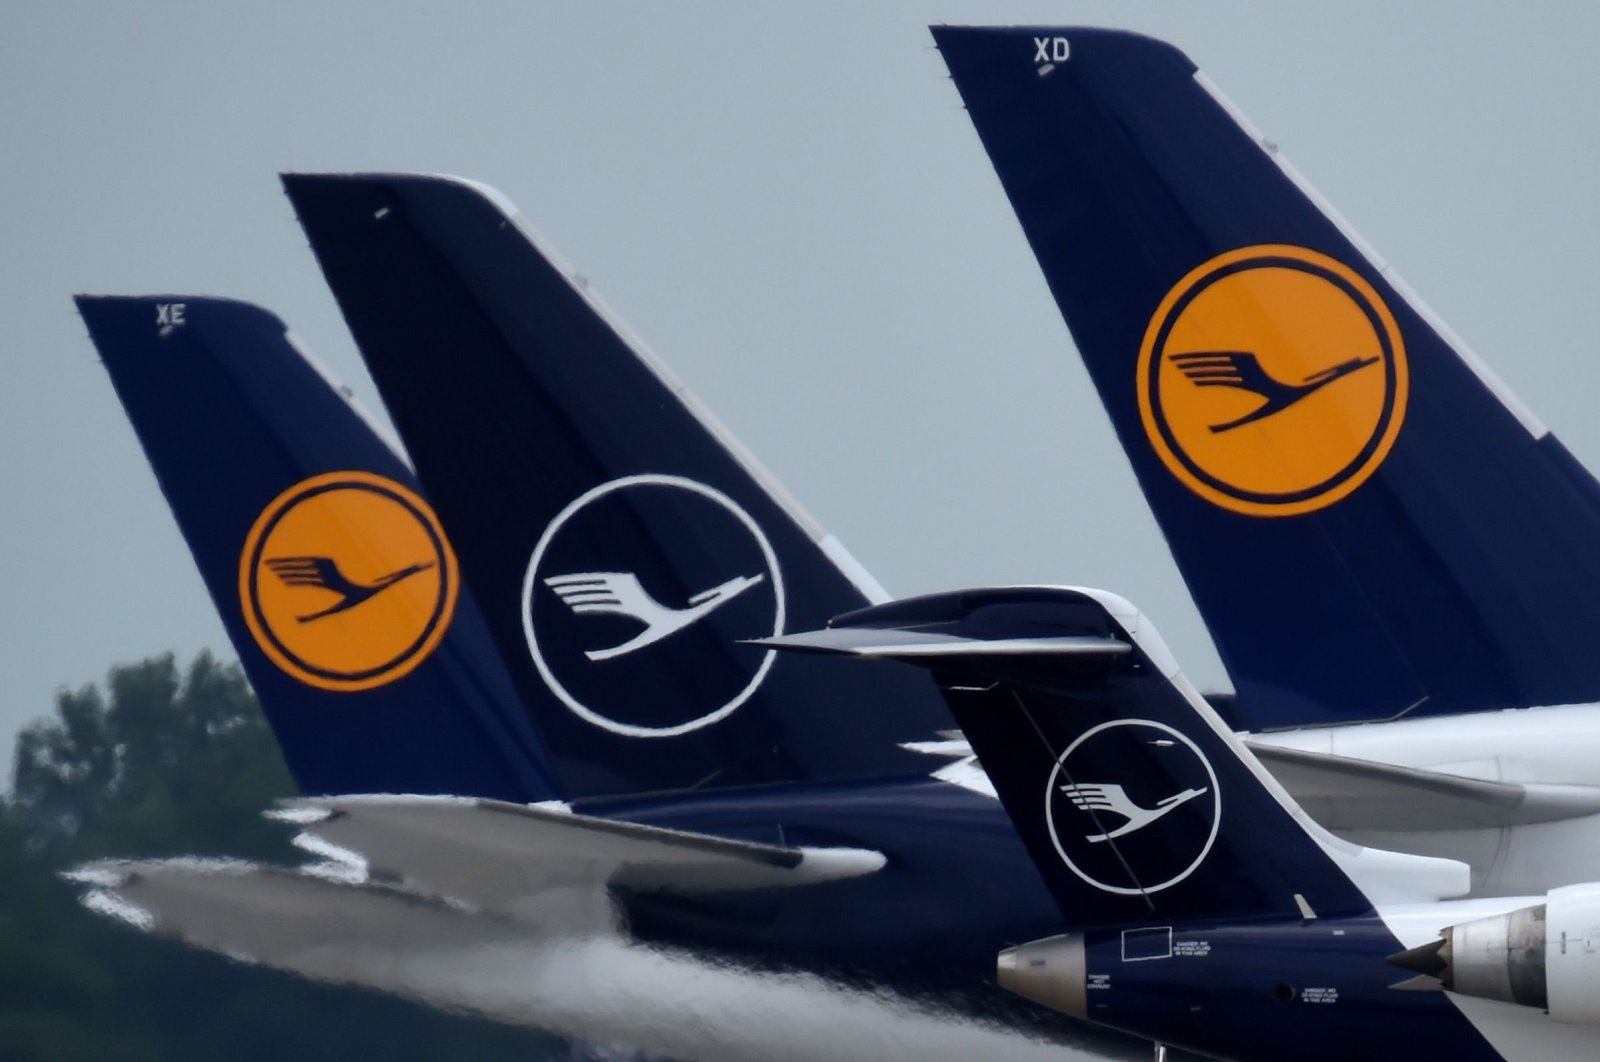 """Aircrafts of German airline Lufthansa at """"Franz-Josef-Strauss"""" airport in Munich, southern Germany, June 25, 2020. (AFP Photo)"""